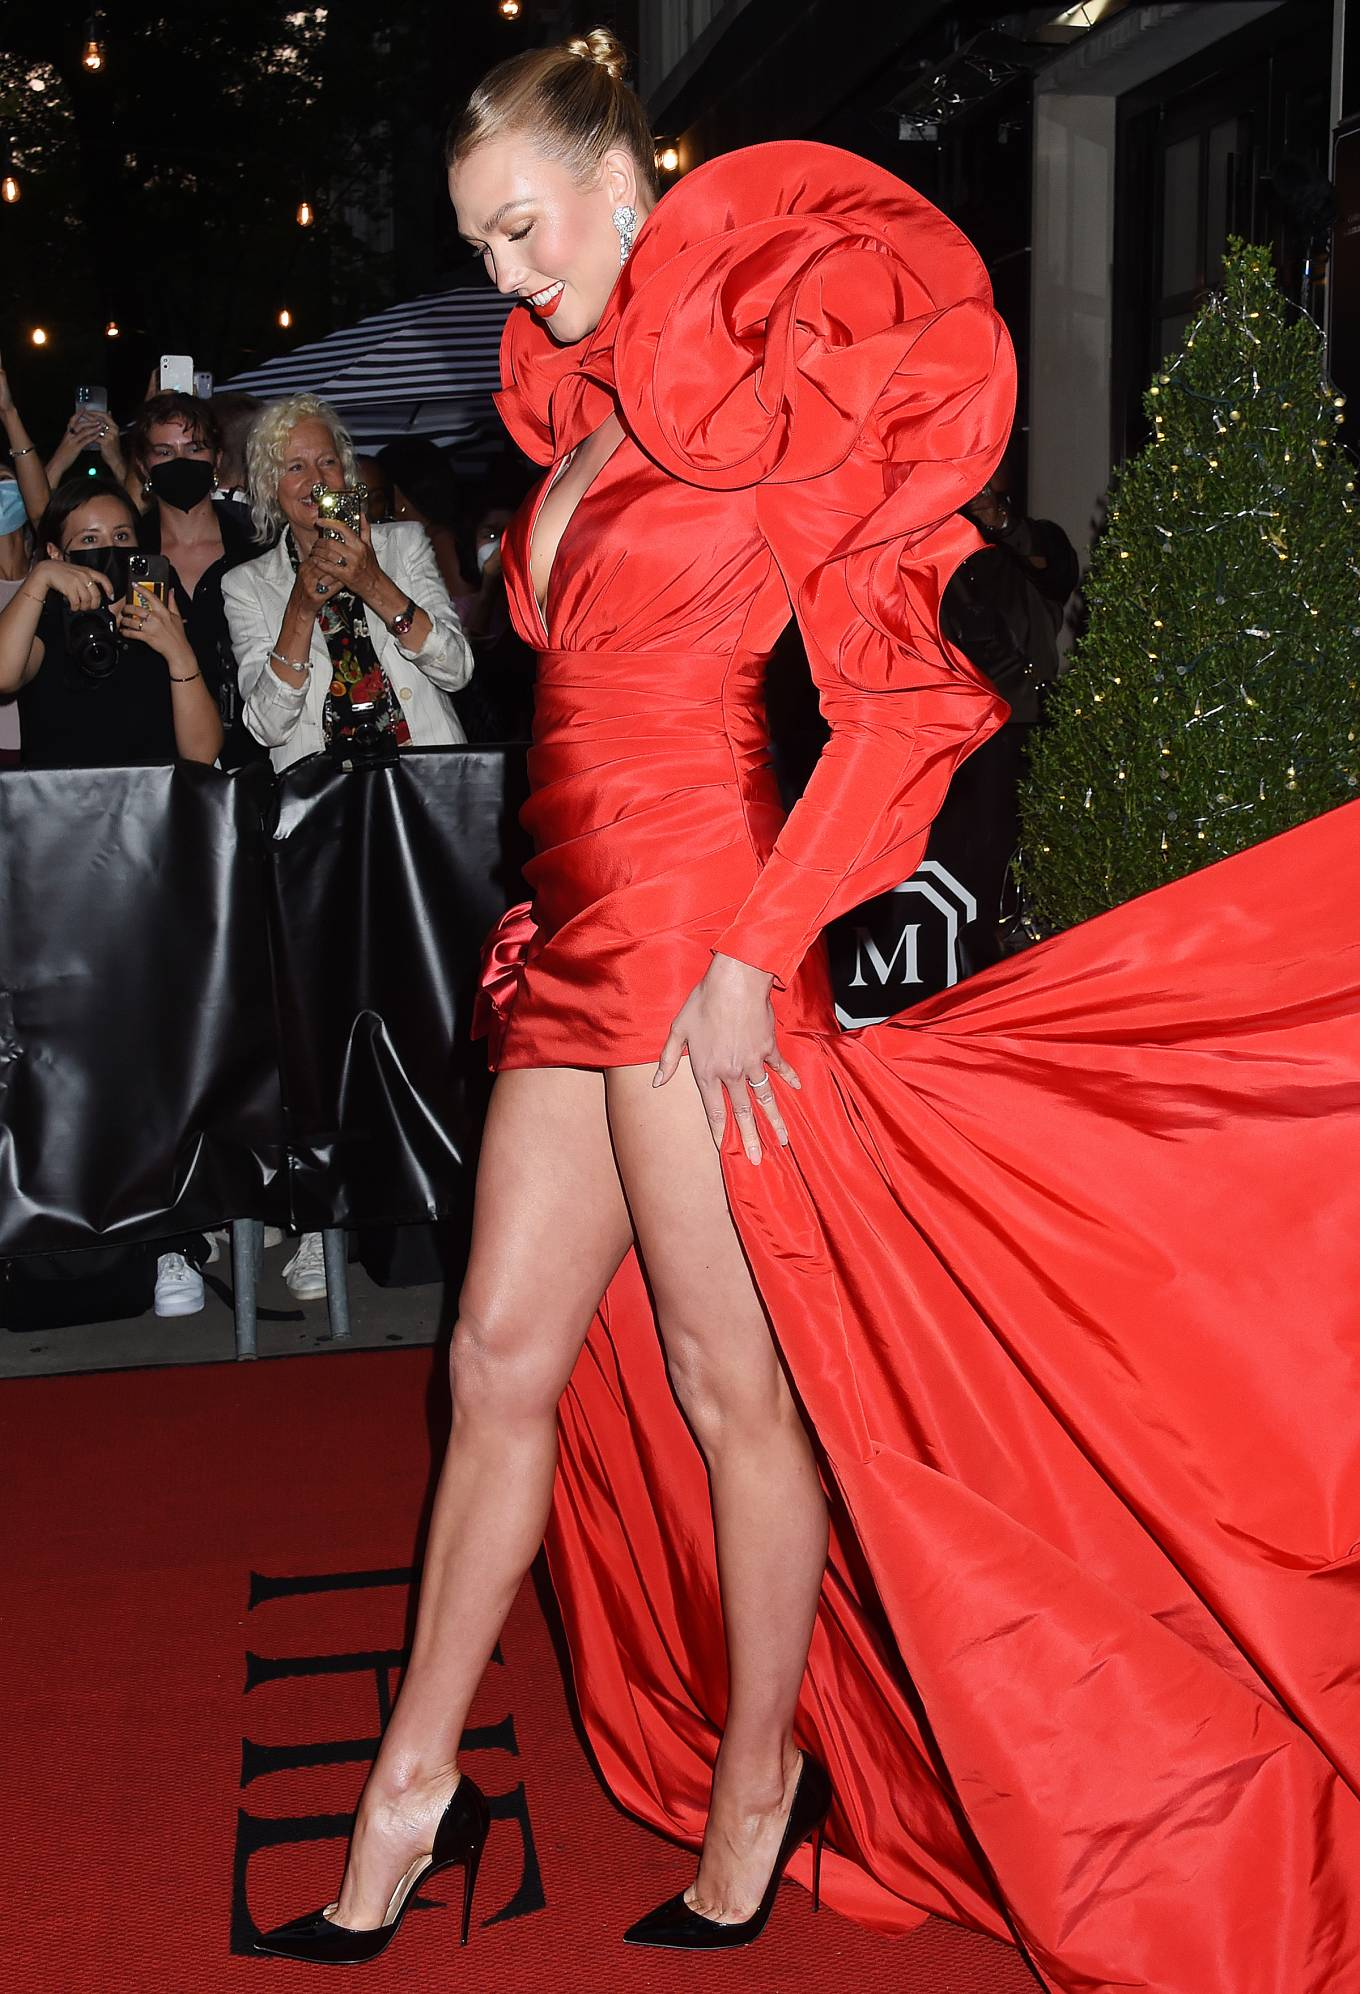 Karlie Kloss - Departing The Mark Hotel in New York City for the 2021 Met Gala